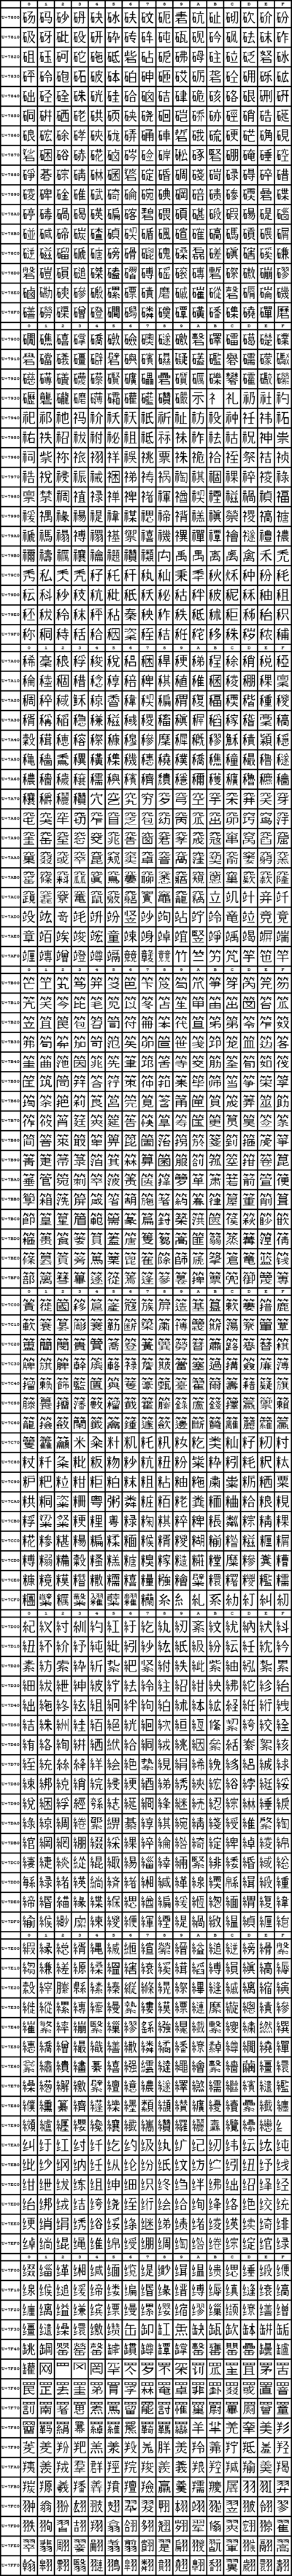 UCB CJK Unified Ideographs 7800-7FFF.png